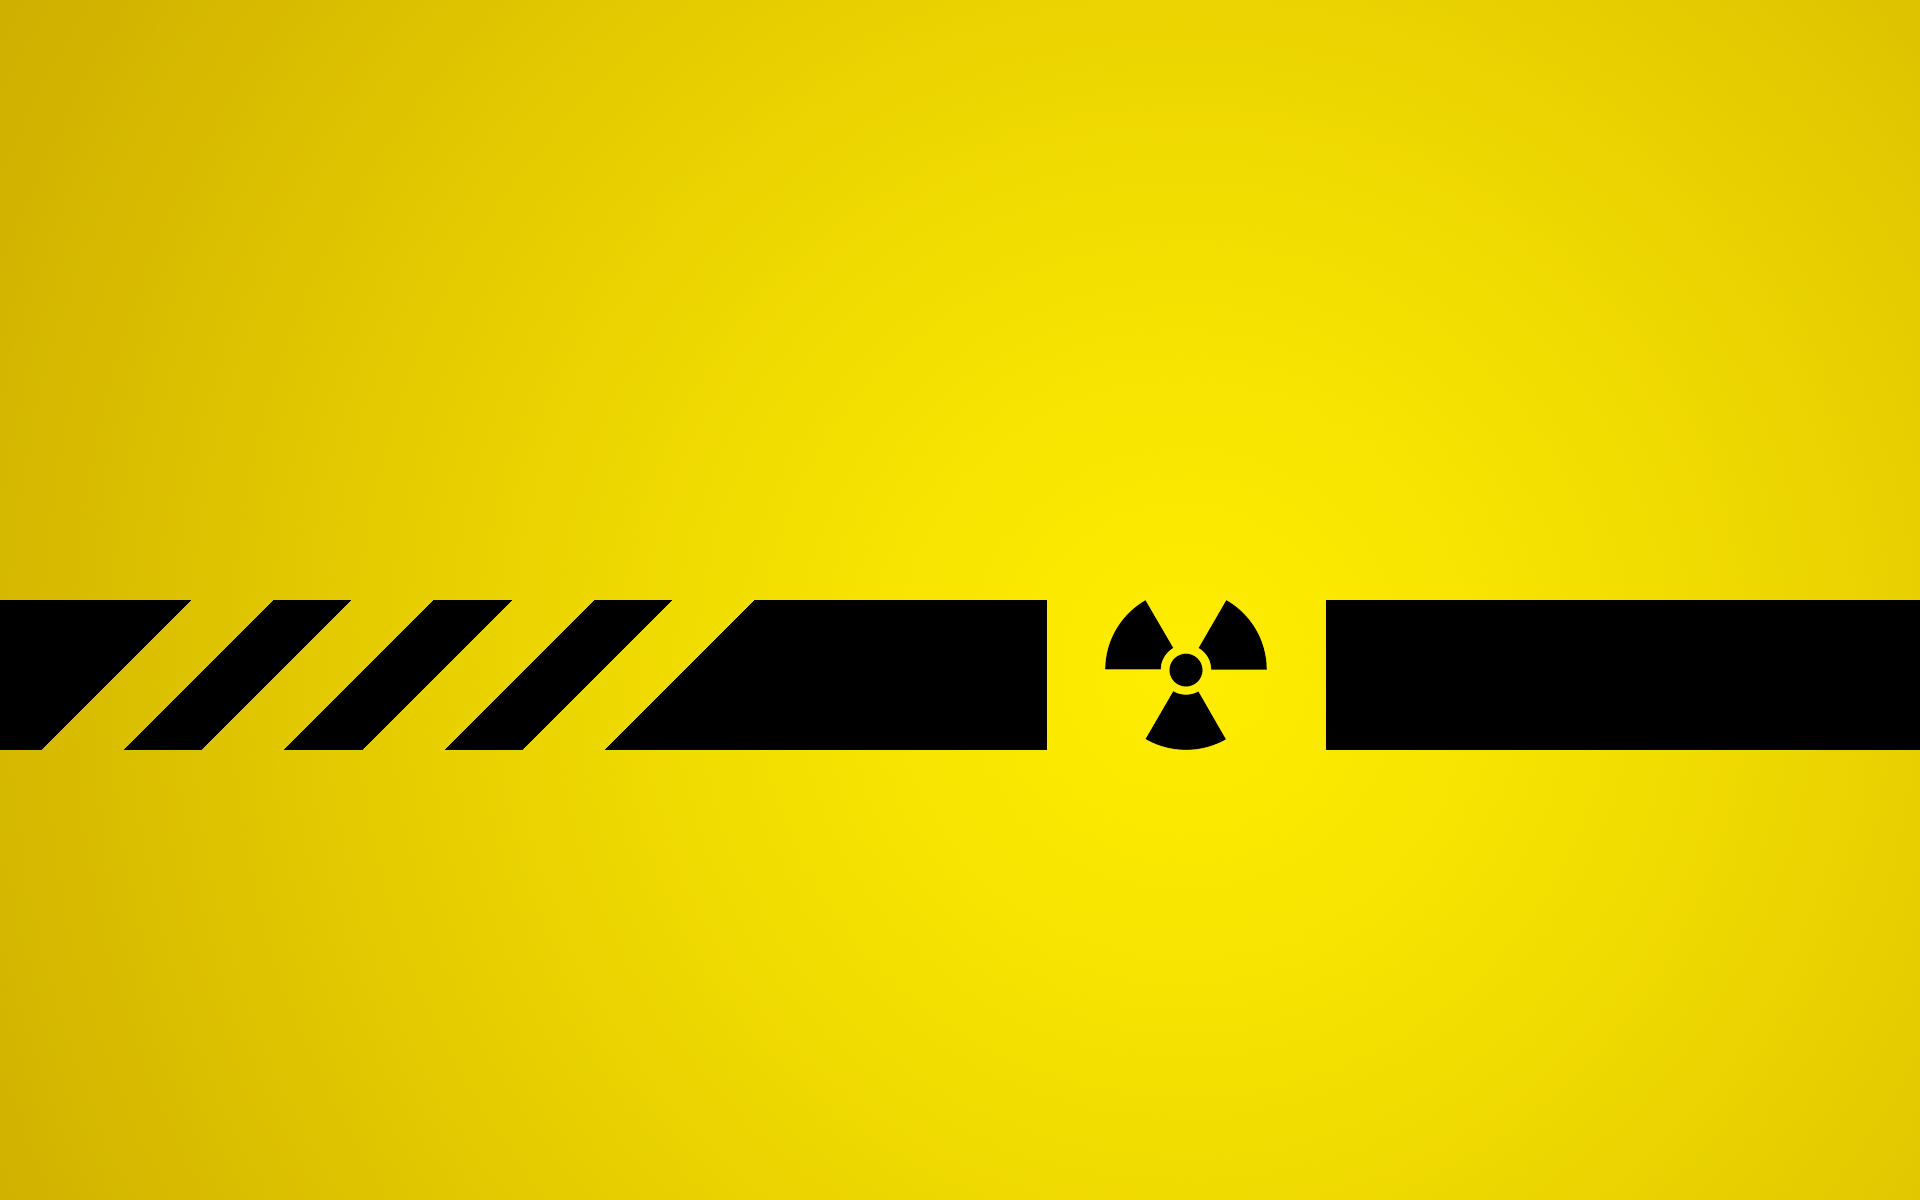 Iphone 8 Plus X Ray Wallpaper Radioactive Full Hd Wallpaper And Background Image